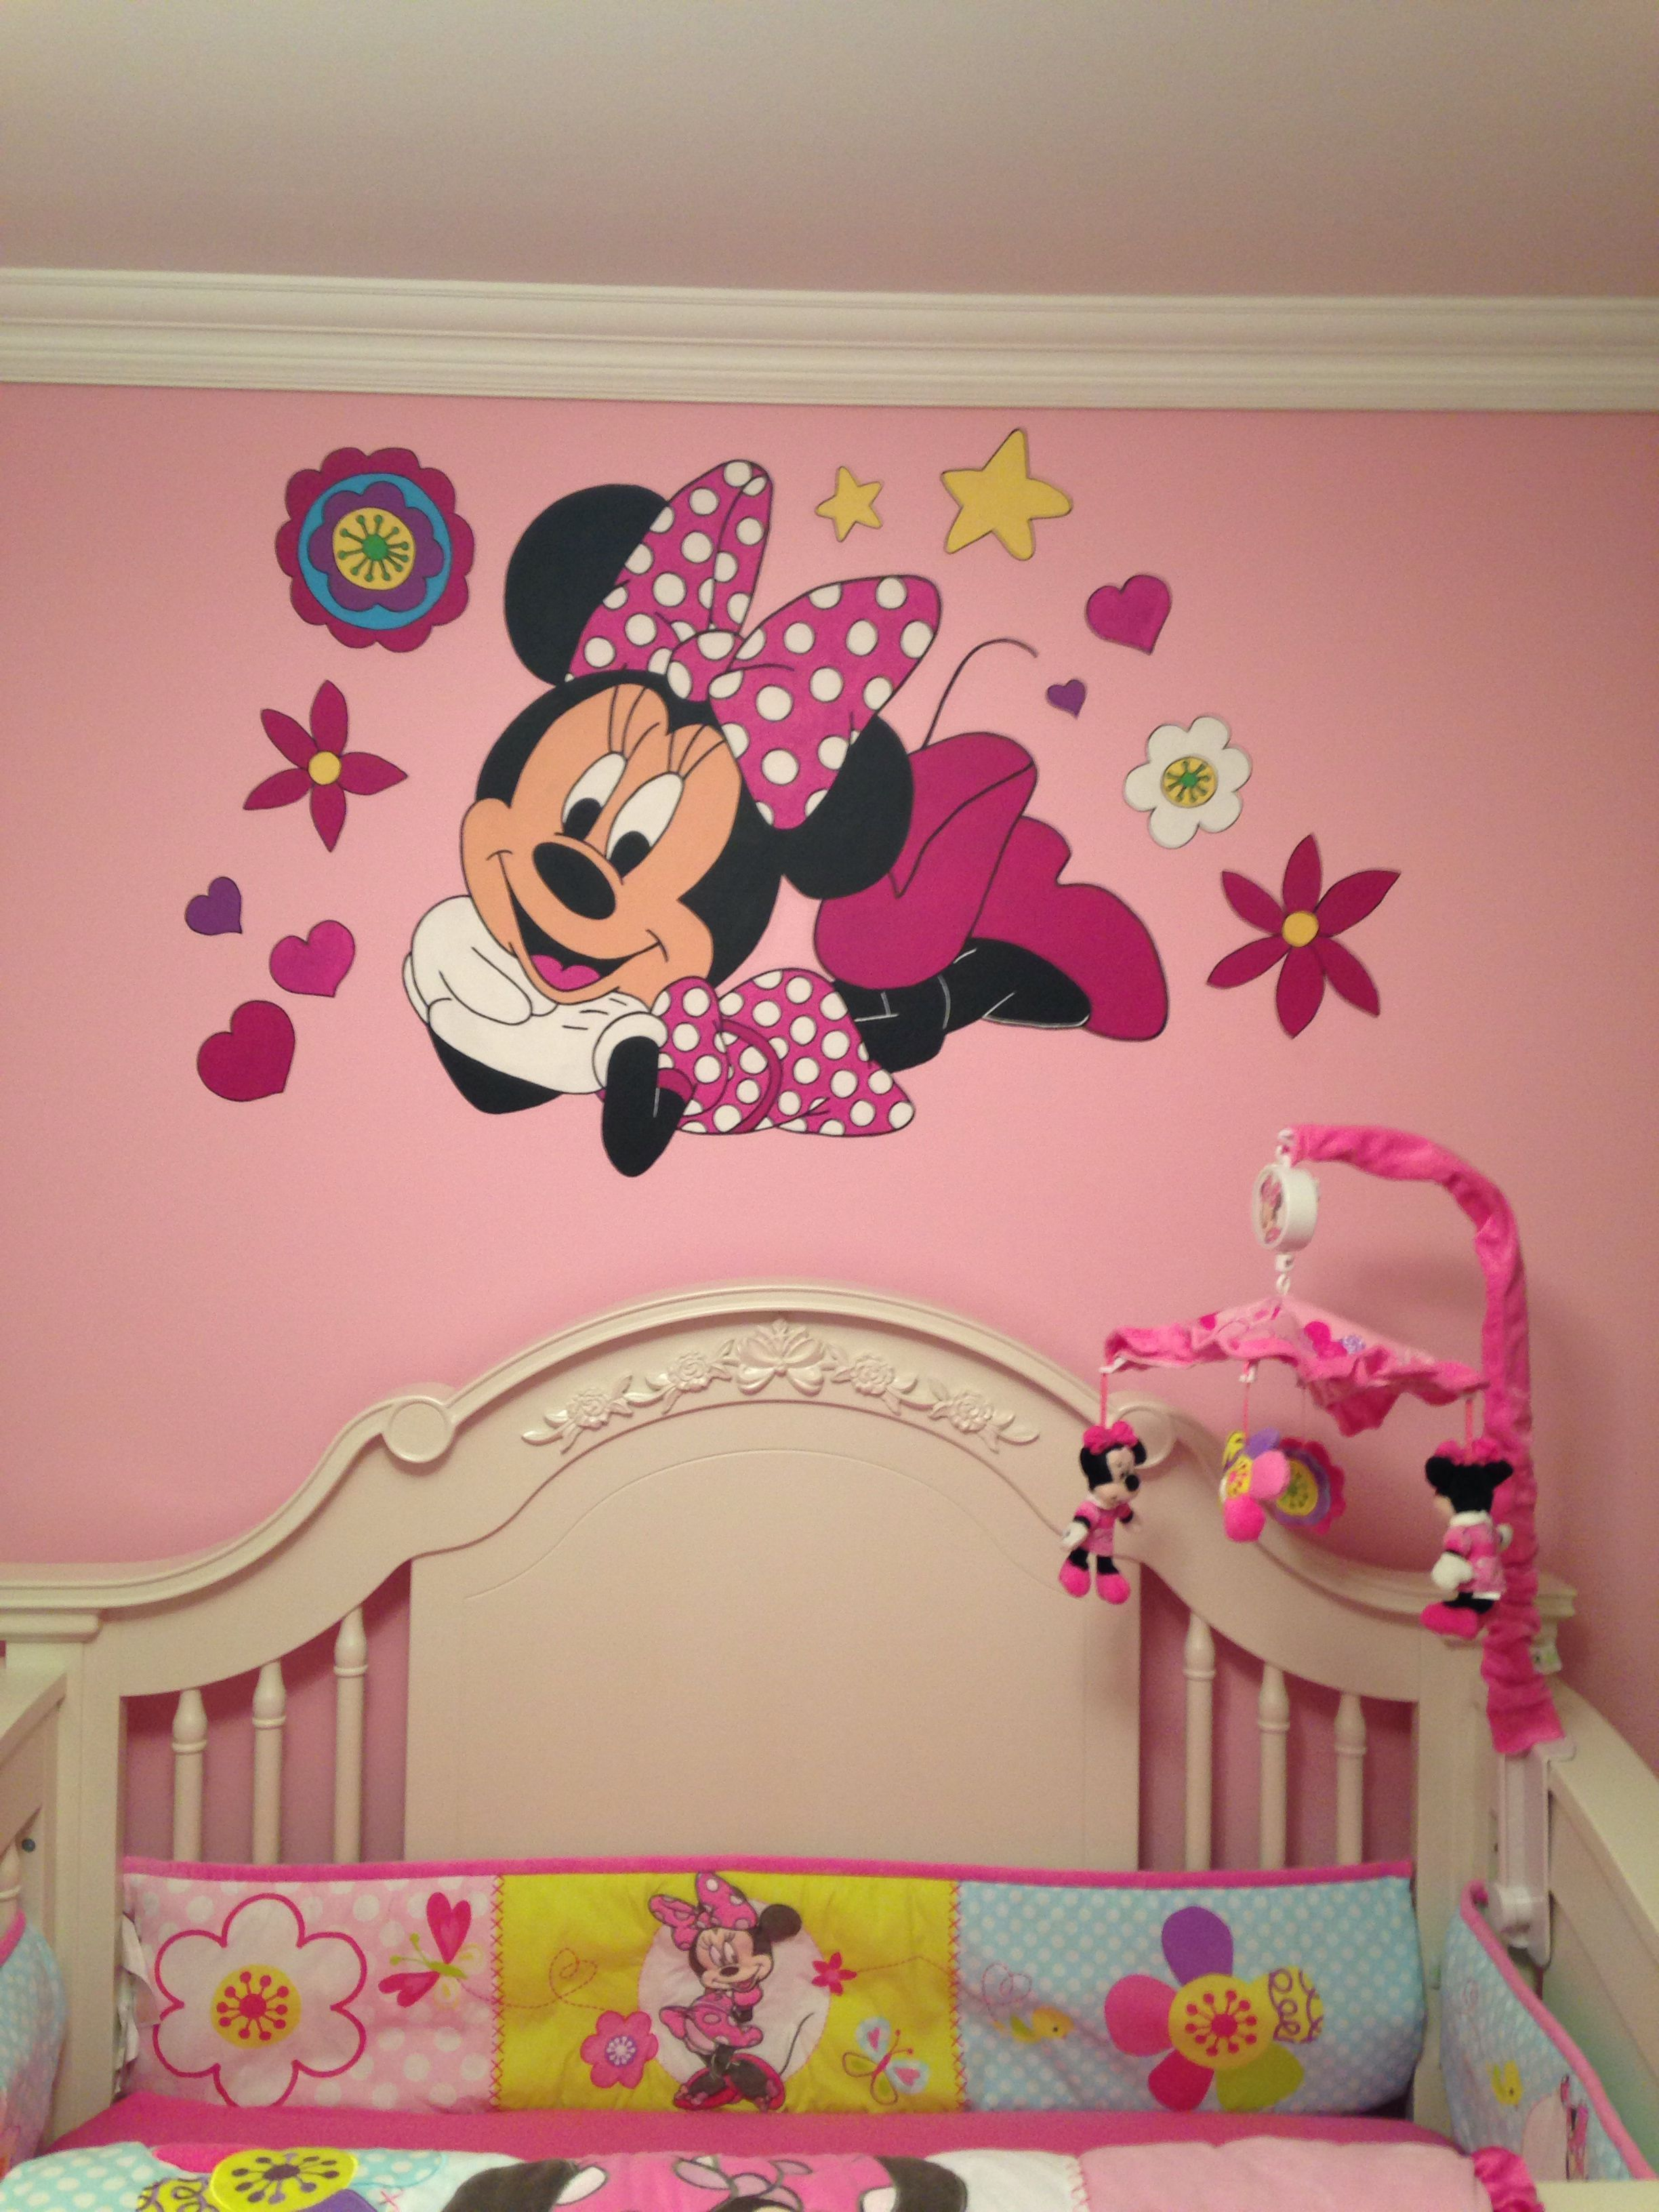 Pin en murales-pared-dormitorio